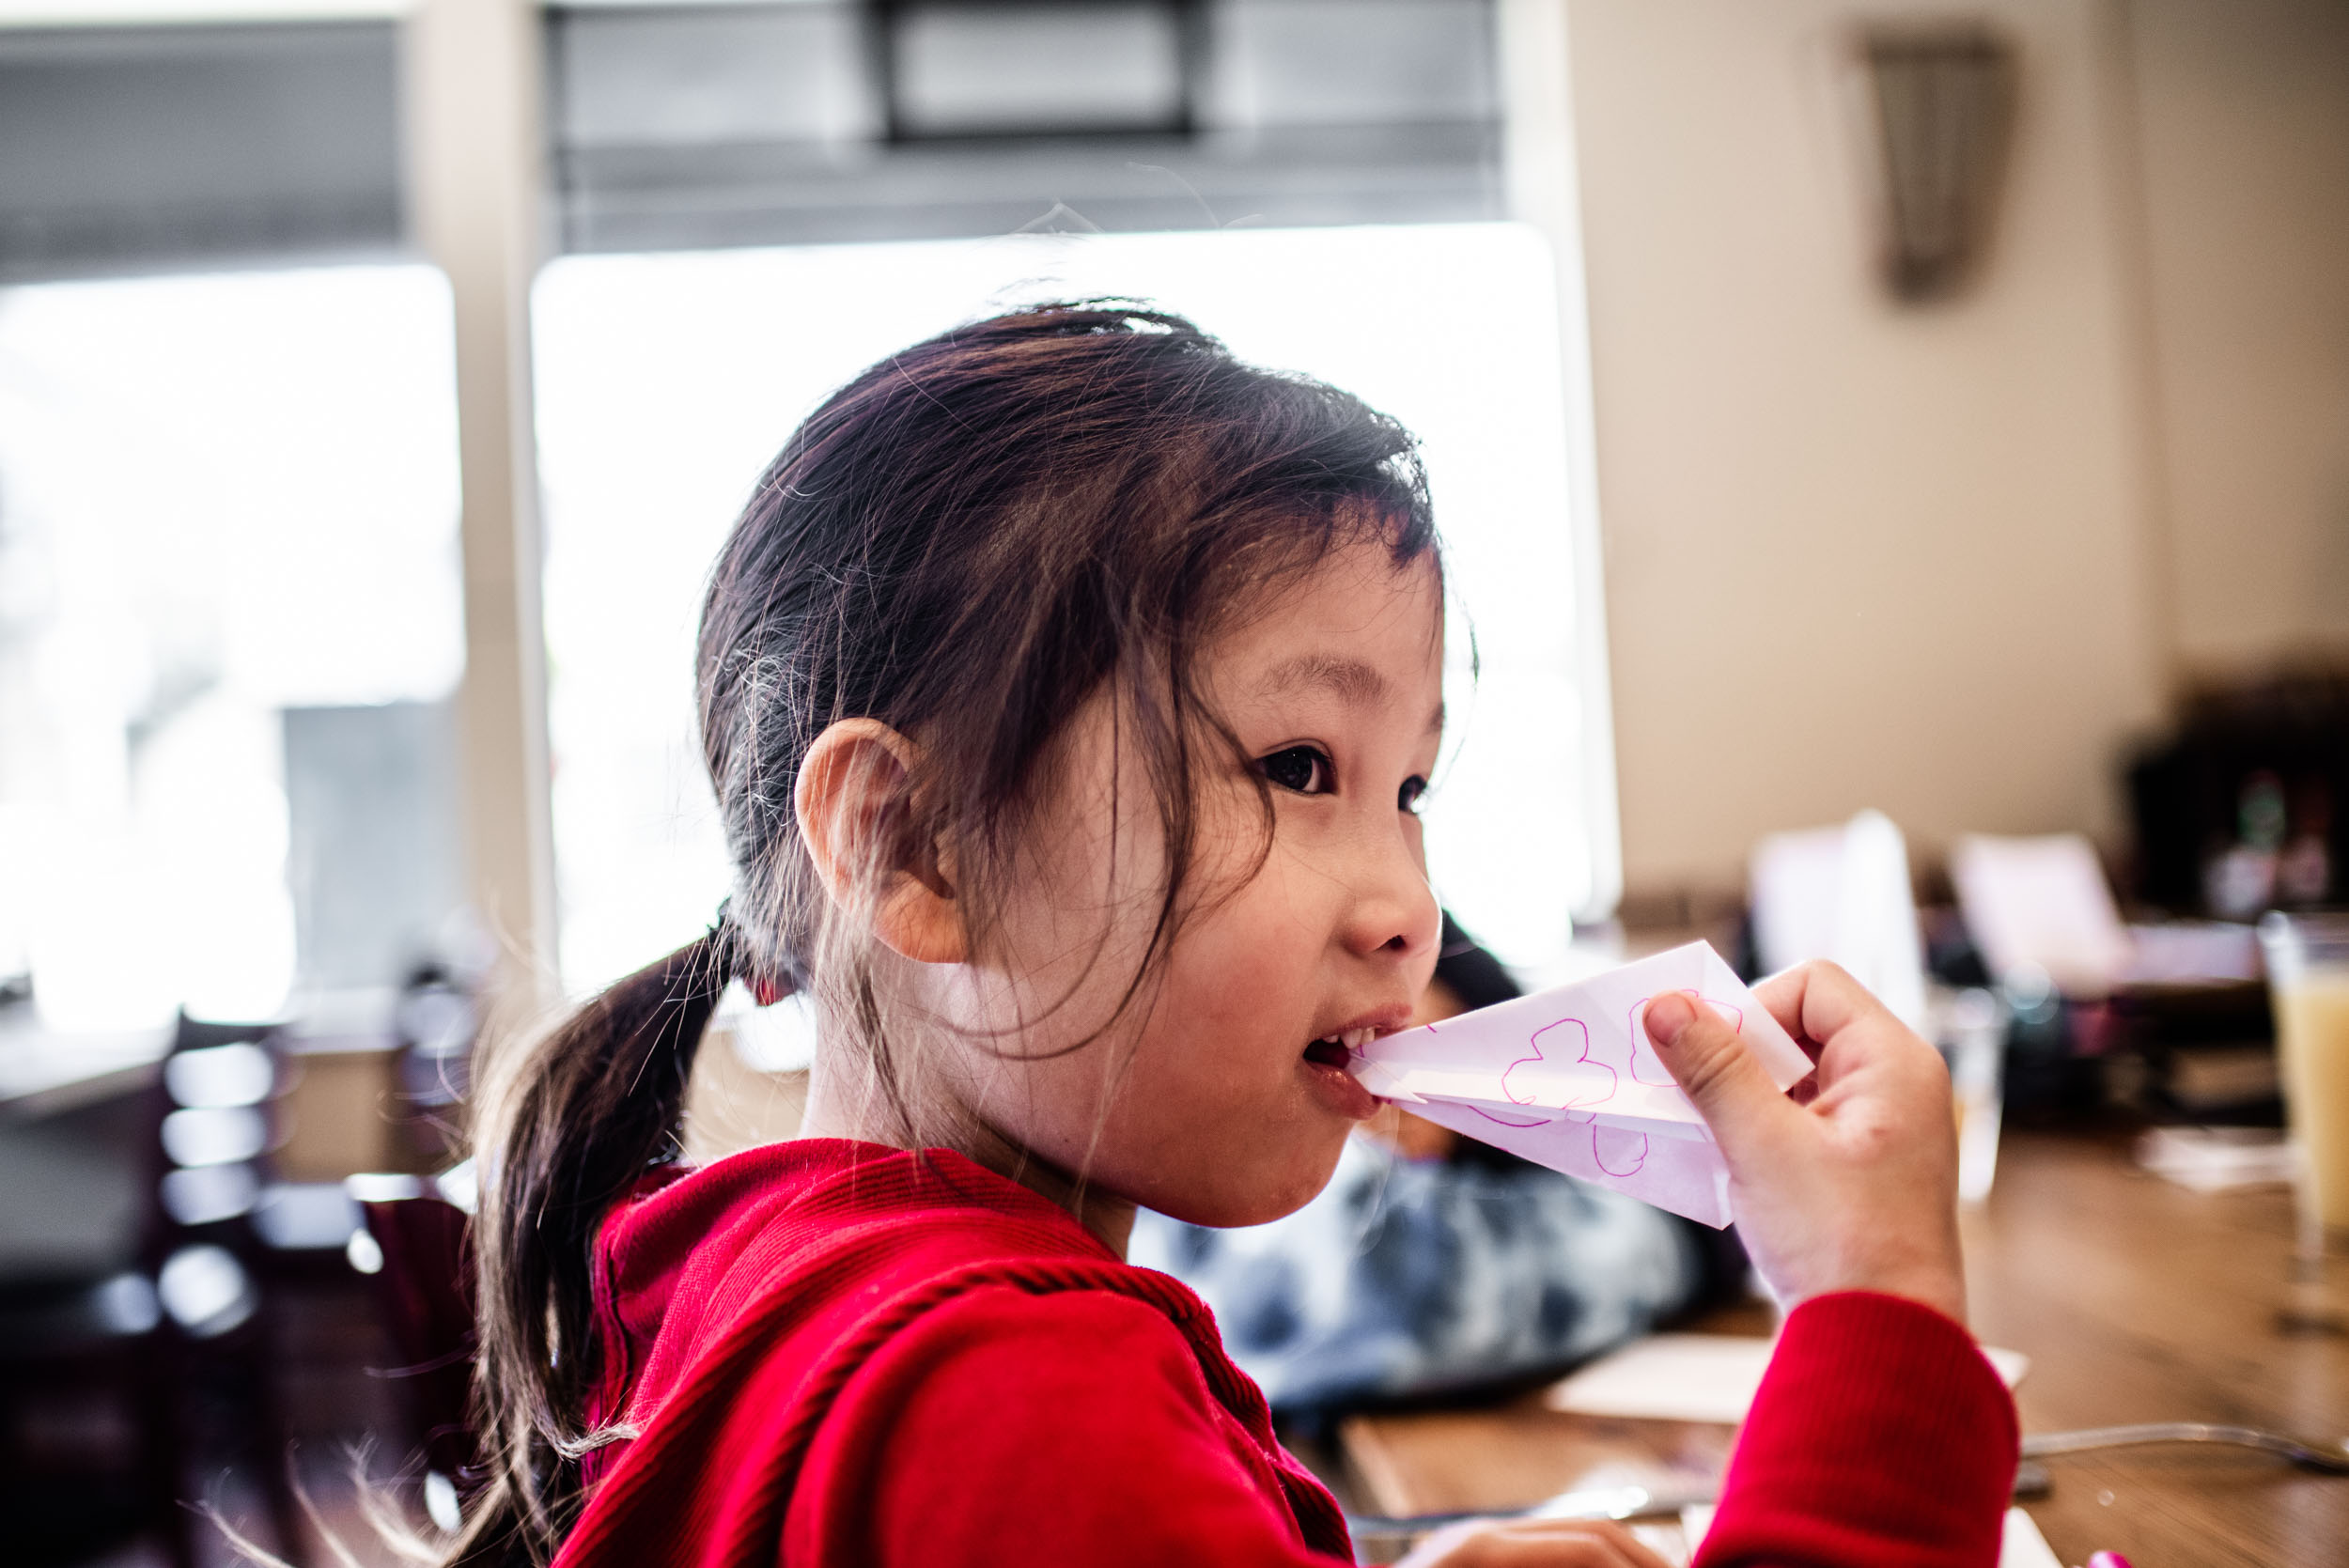 Little girl smiling with a paper airplane in her mouth while waiting for breakfast at Ella's San Francisco. Lisa Hu Chen tutorial on IGTV videos.